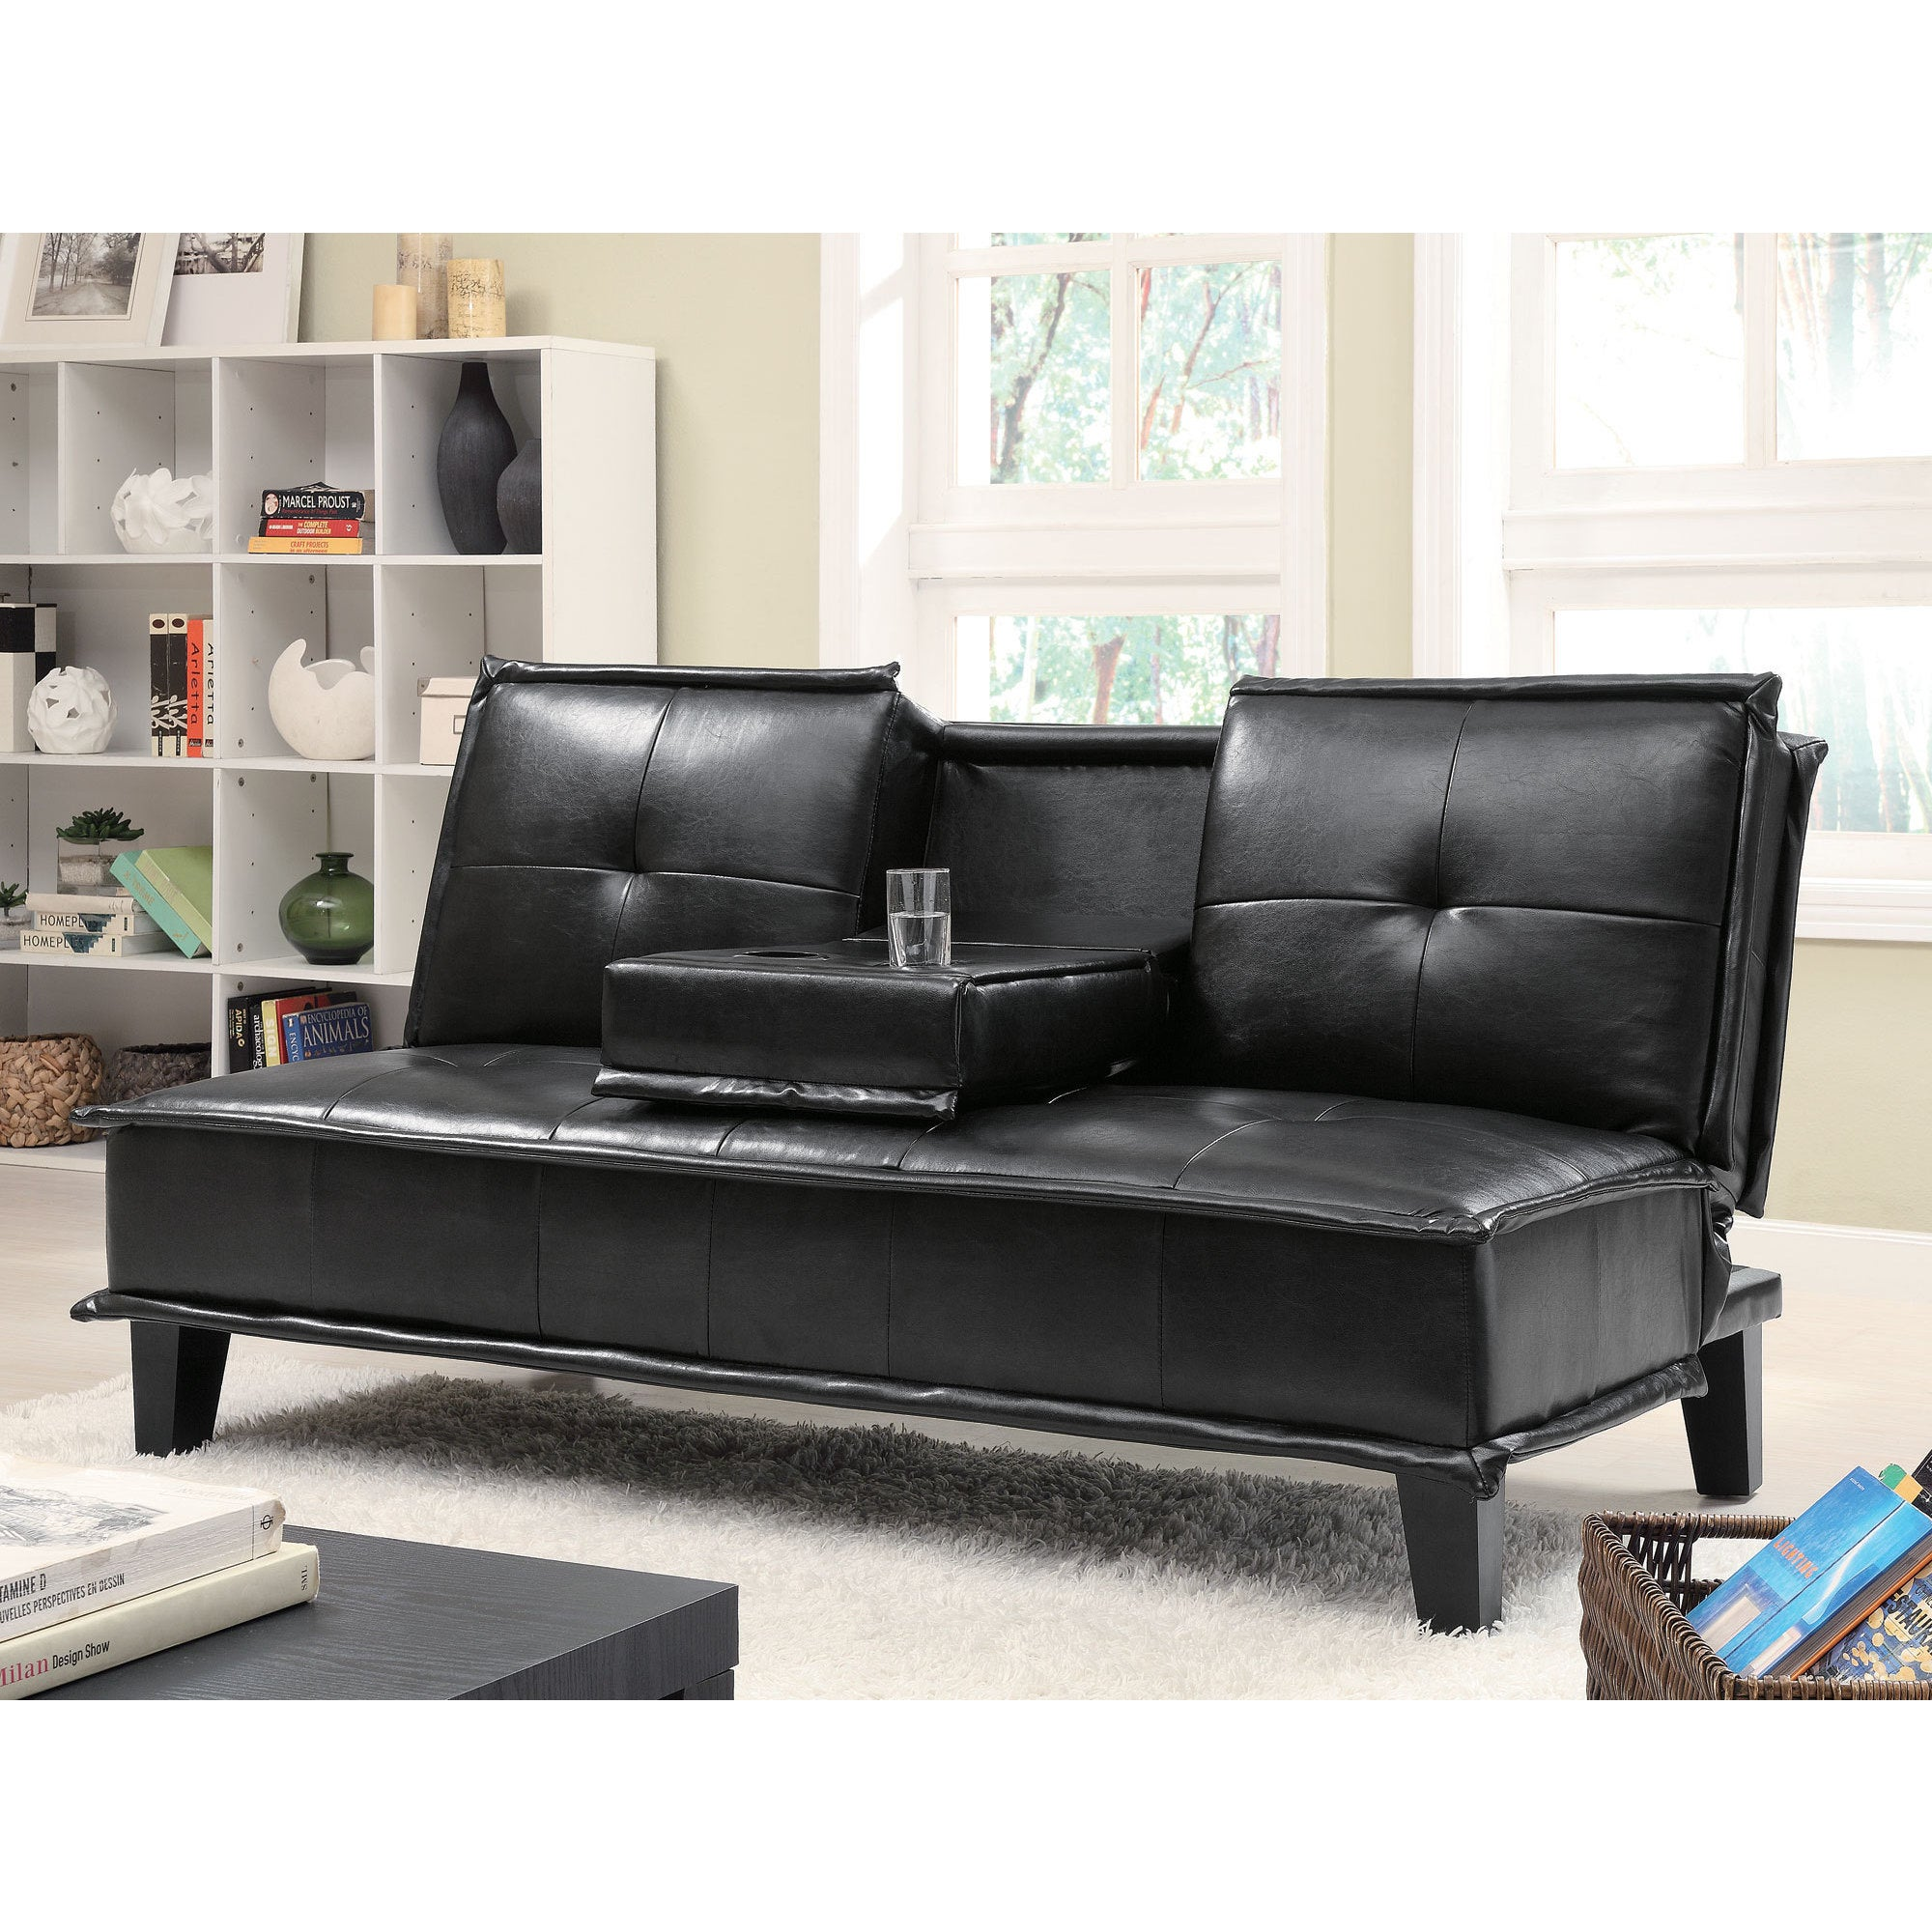 Sofa Bed With Flip Down Tray